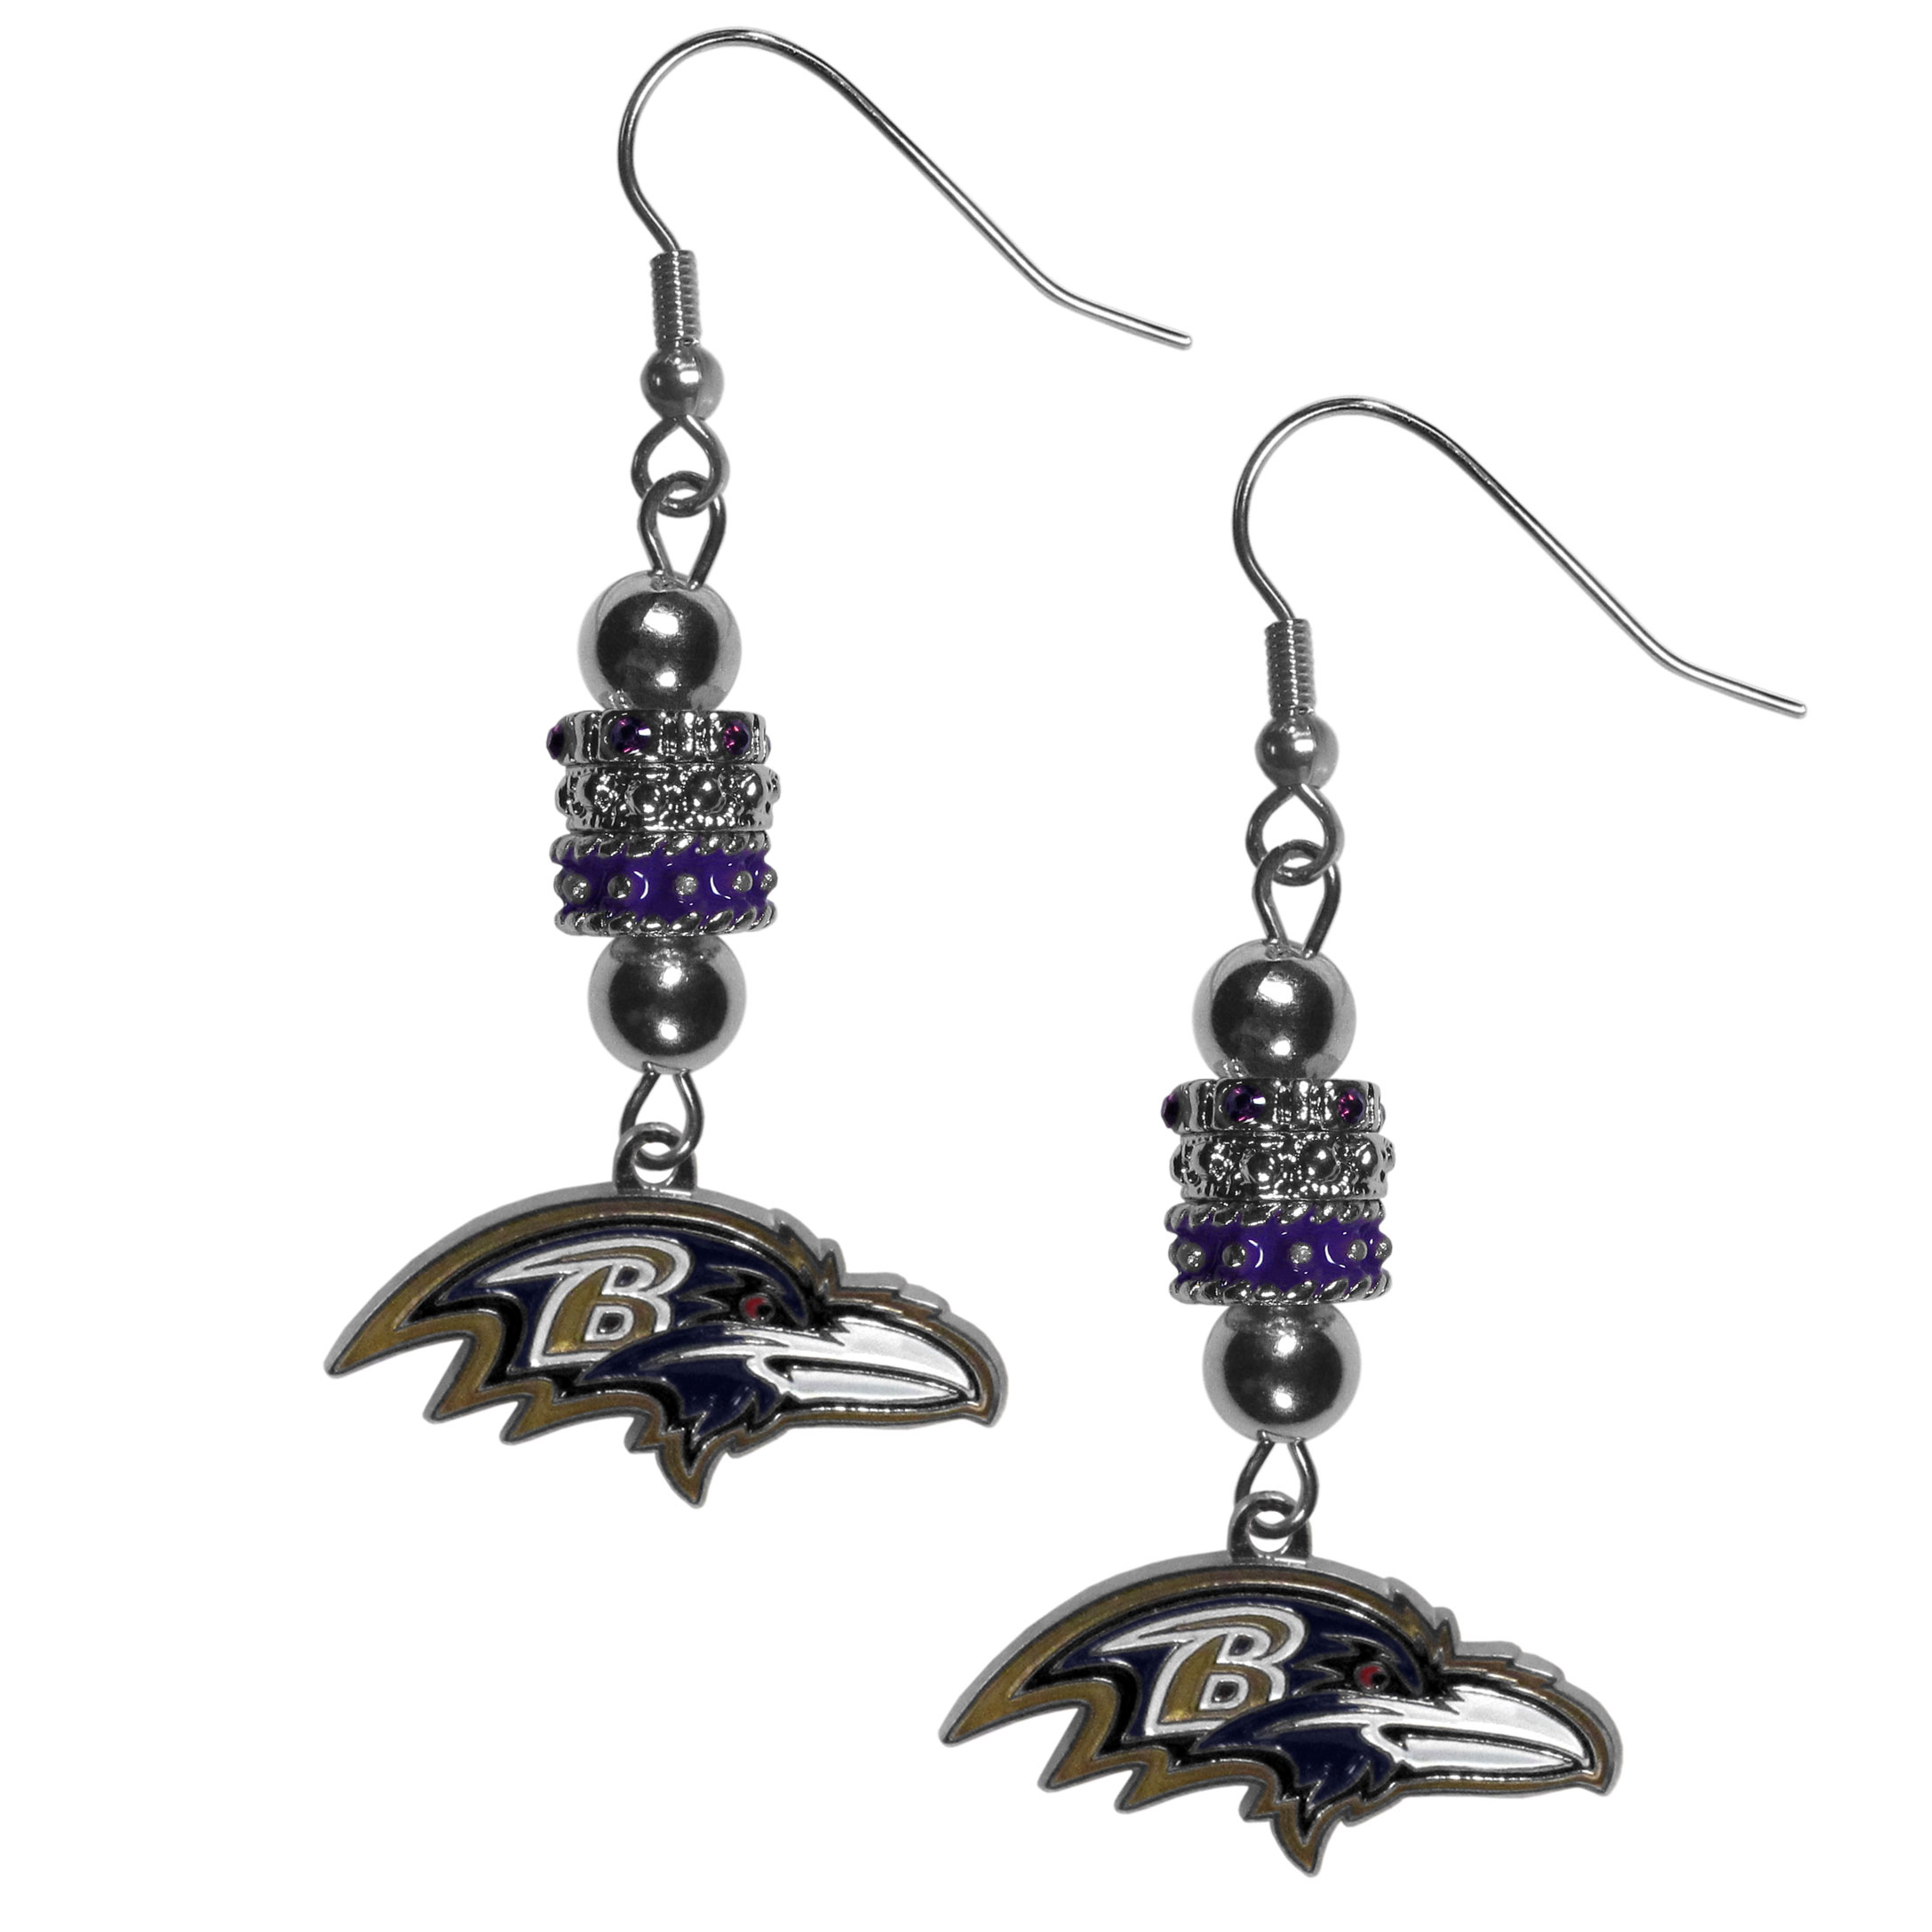 Baltimore Ravens Euro Bead Earrings - These beautiful euro style earrings feature 3 euro beads and a detailed Baltimore Ravens charm on hypoallergenic fishhook posts.